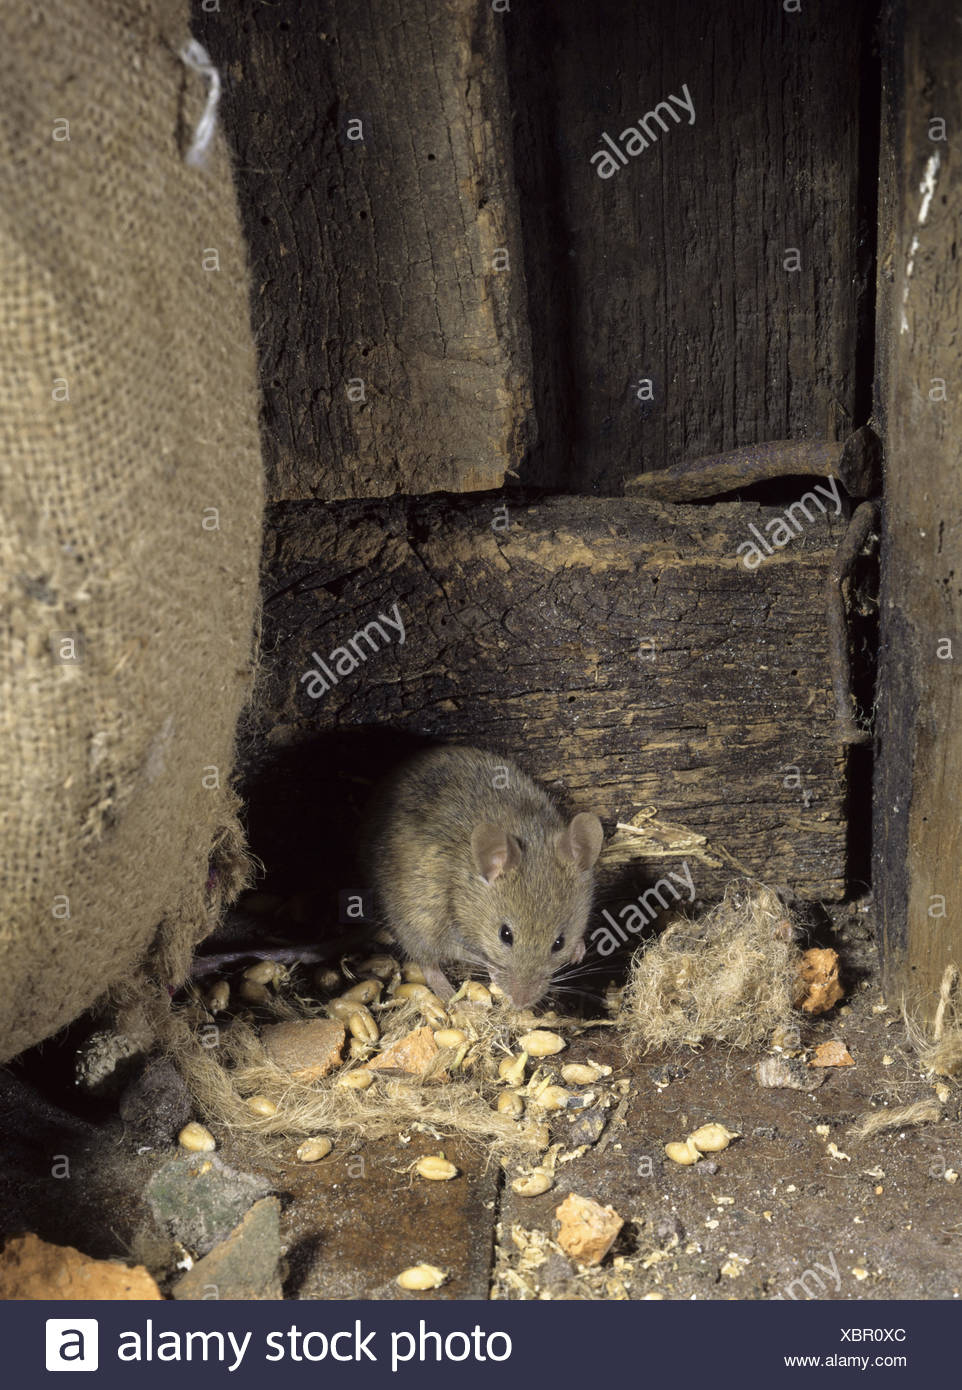 House Mouse - Mus domesticus - Stock Image